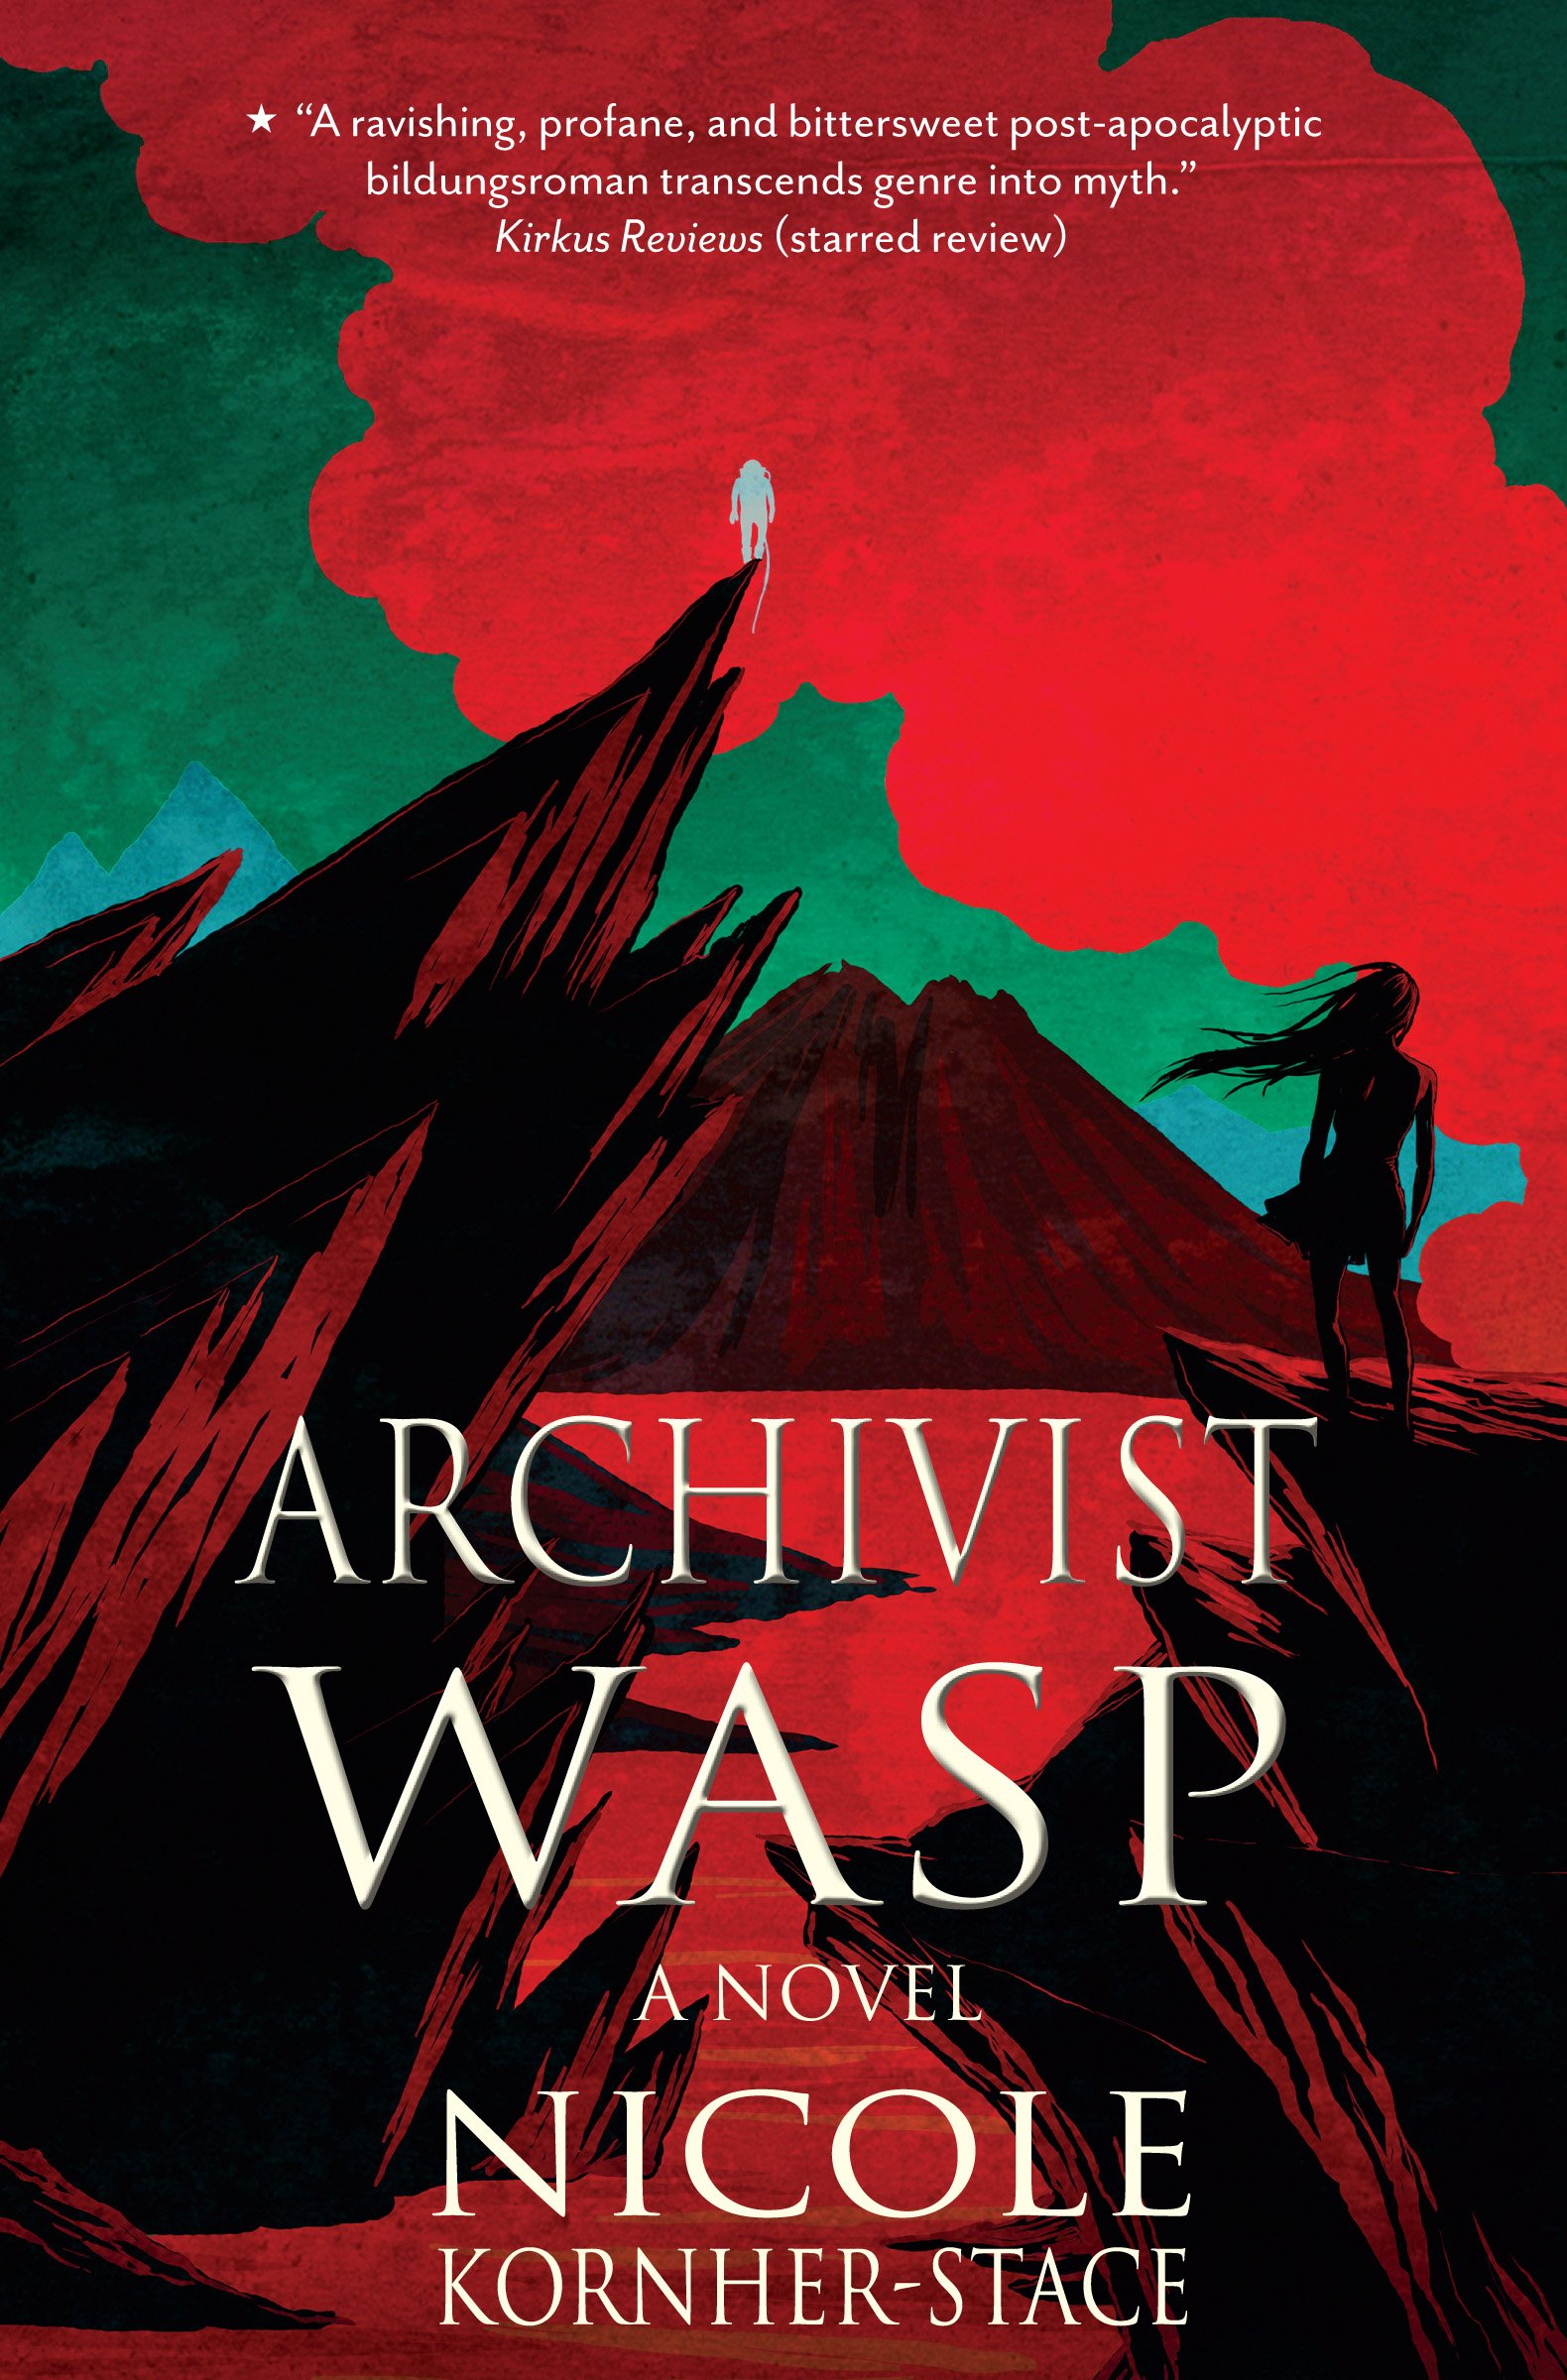 Image result for archivist wasp